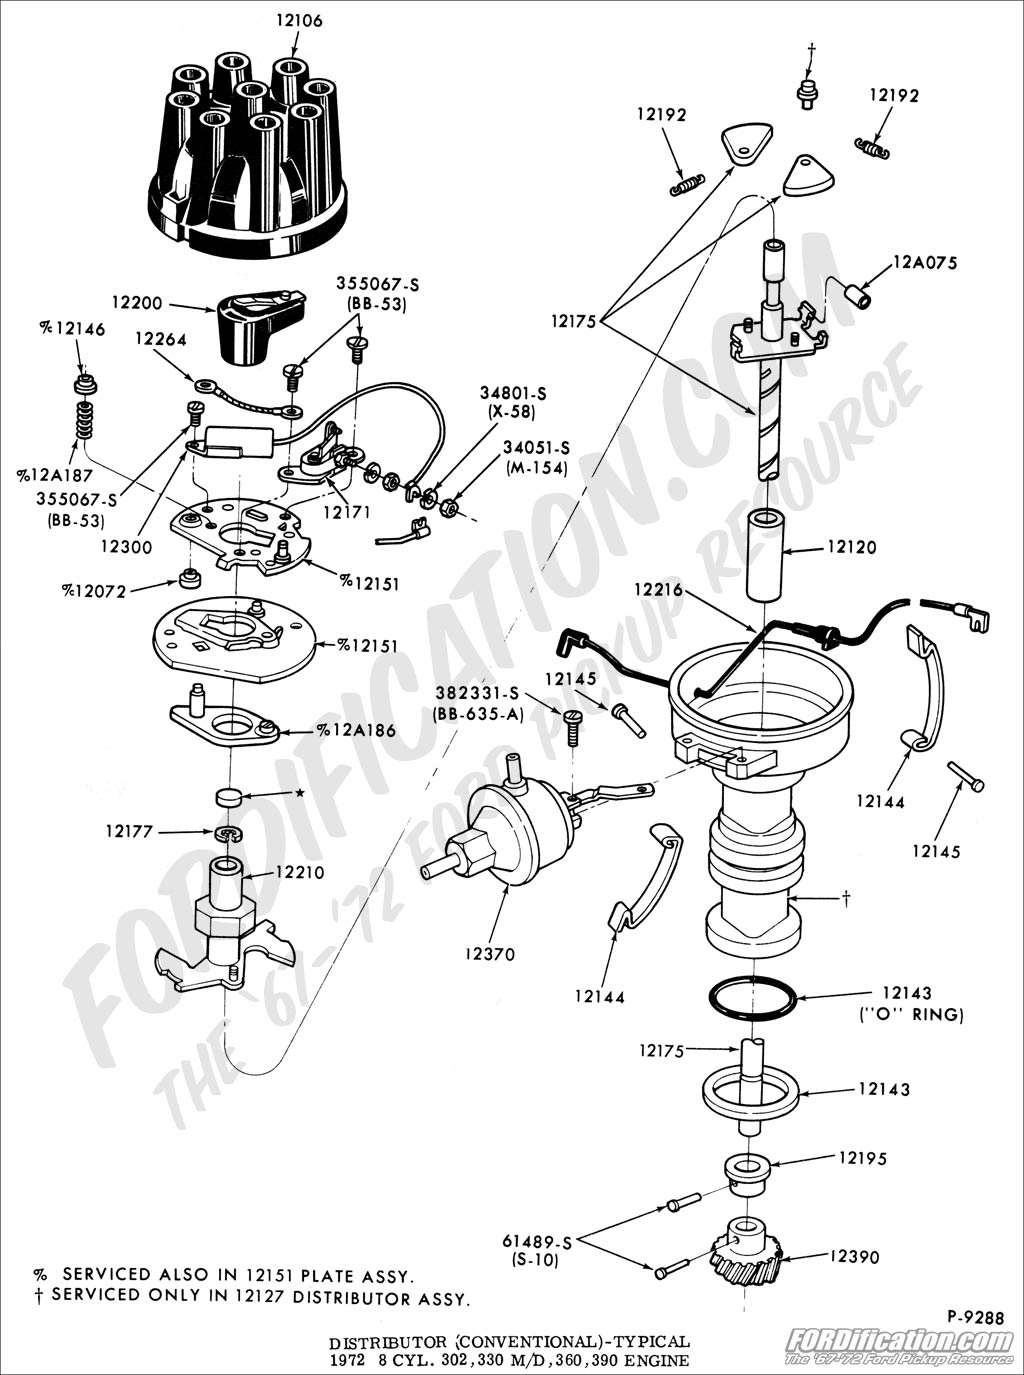 Ford Alternator Wiring Diagram As Well Starter Solenoid Wiring Diagram